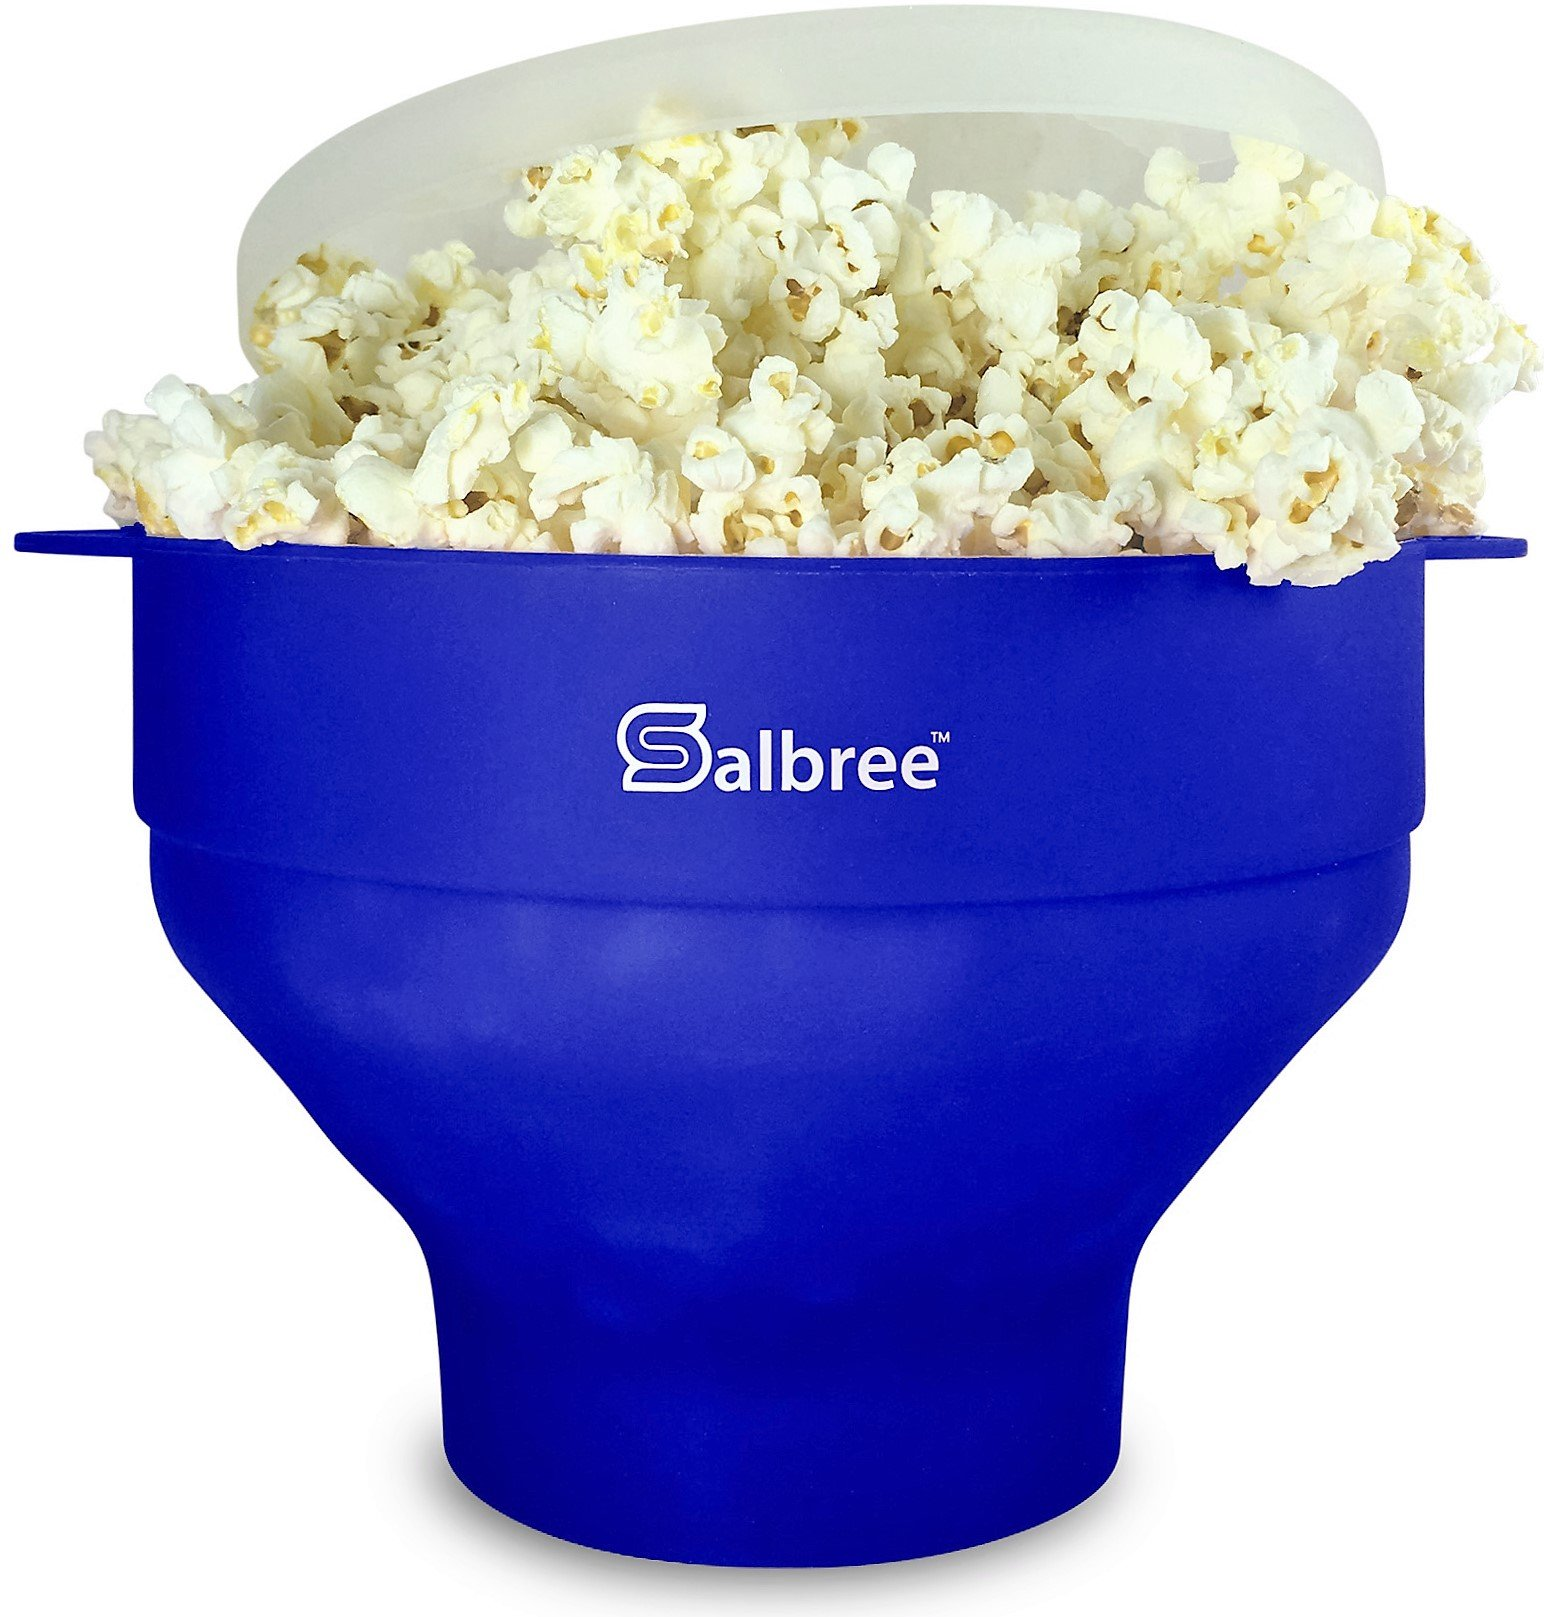 Original Salbree Microwave Popcorn Popper, Silicone Popcorn Maker, Collapsible Bowl BPA Free - 15 Colors Available (Blue) by Salbree